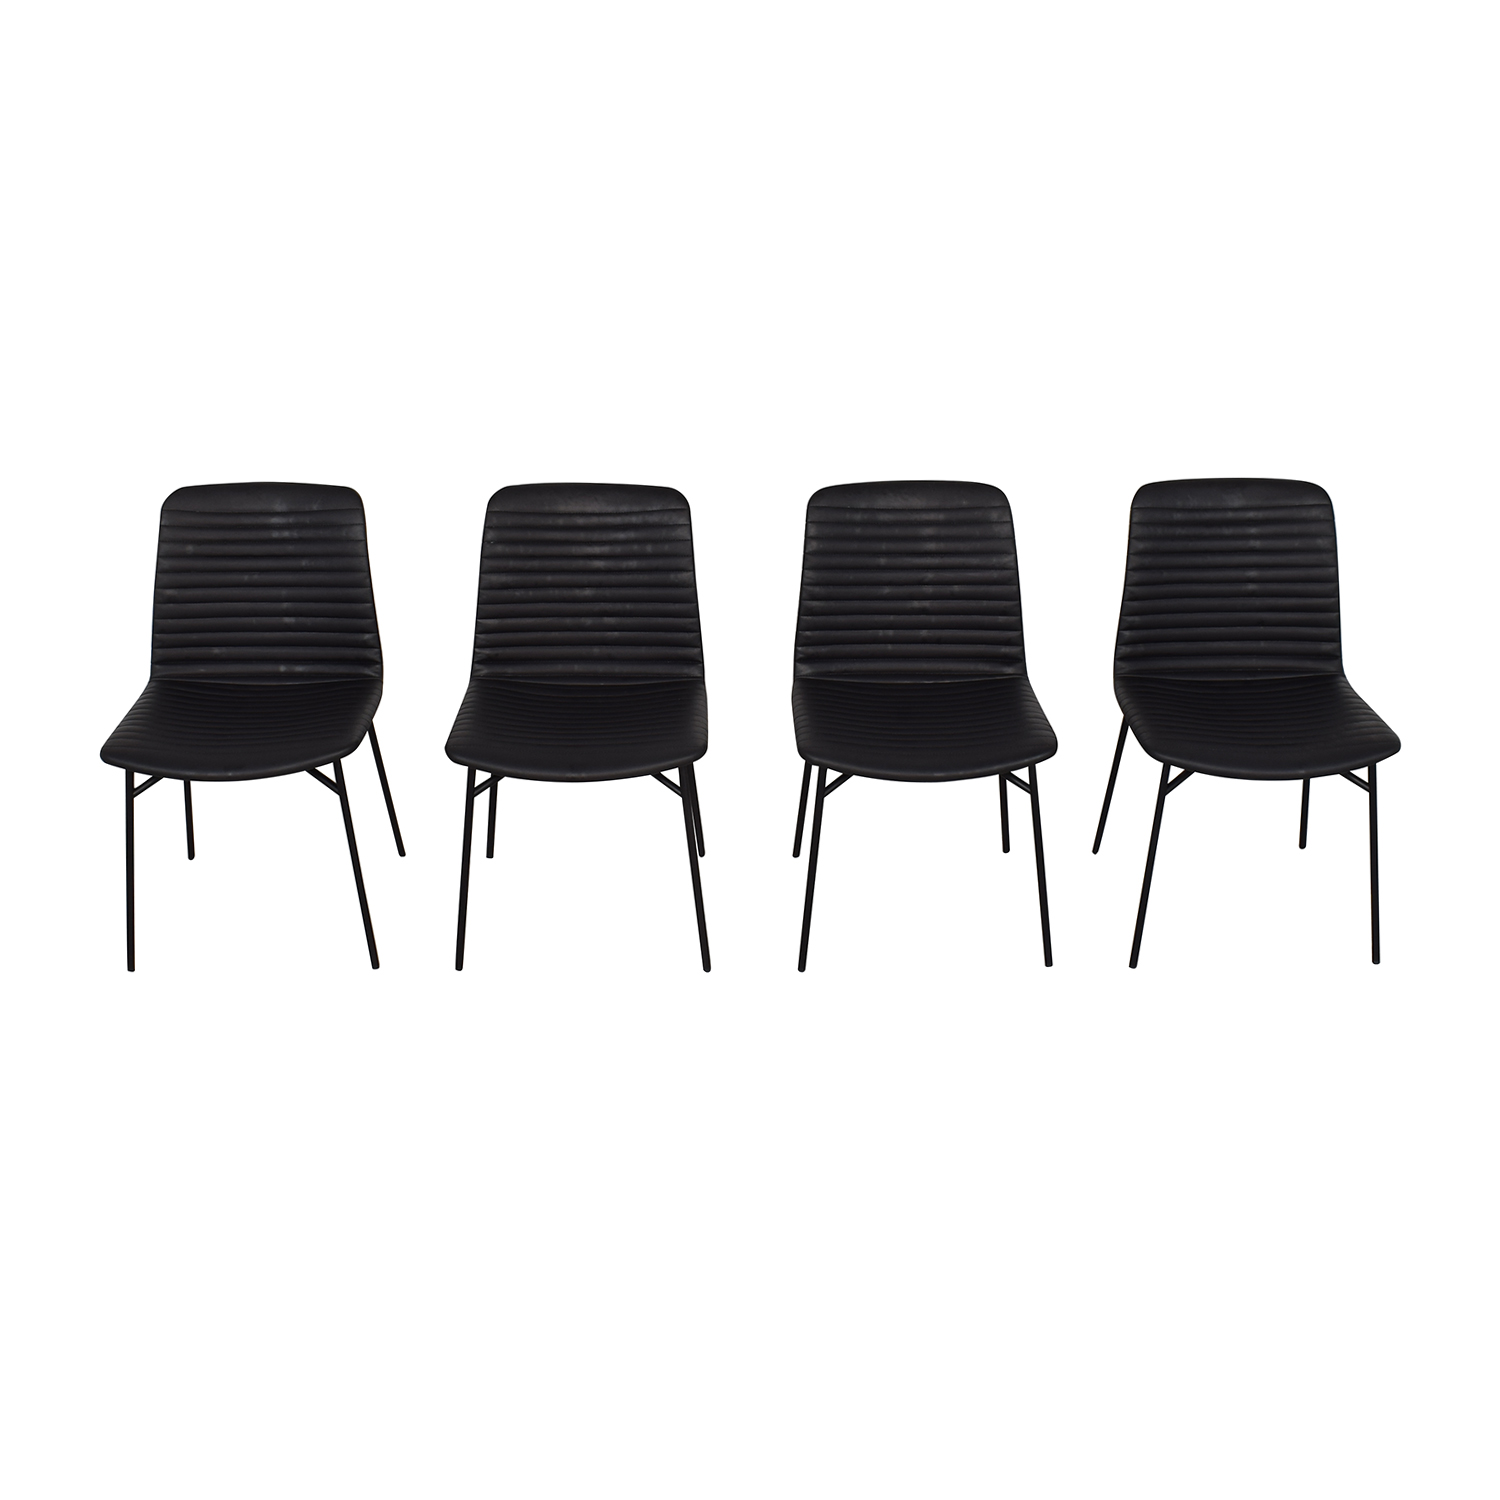 shop Room & Board Room & Board Cato Chairs online